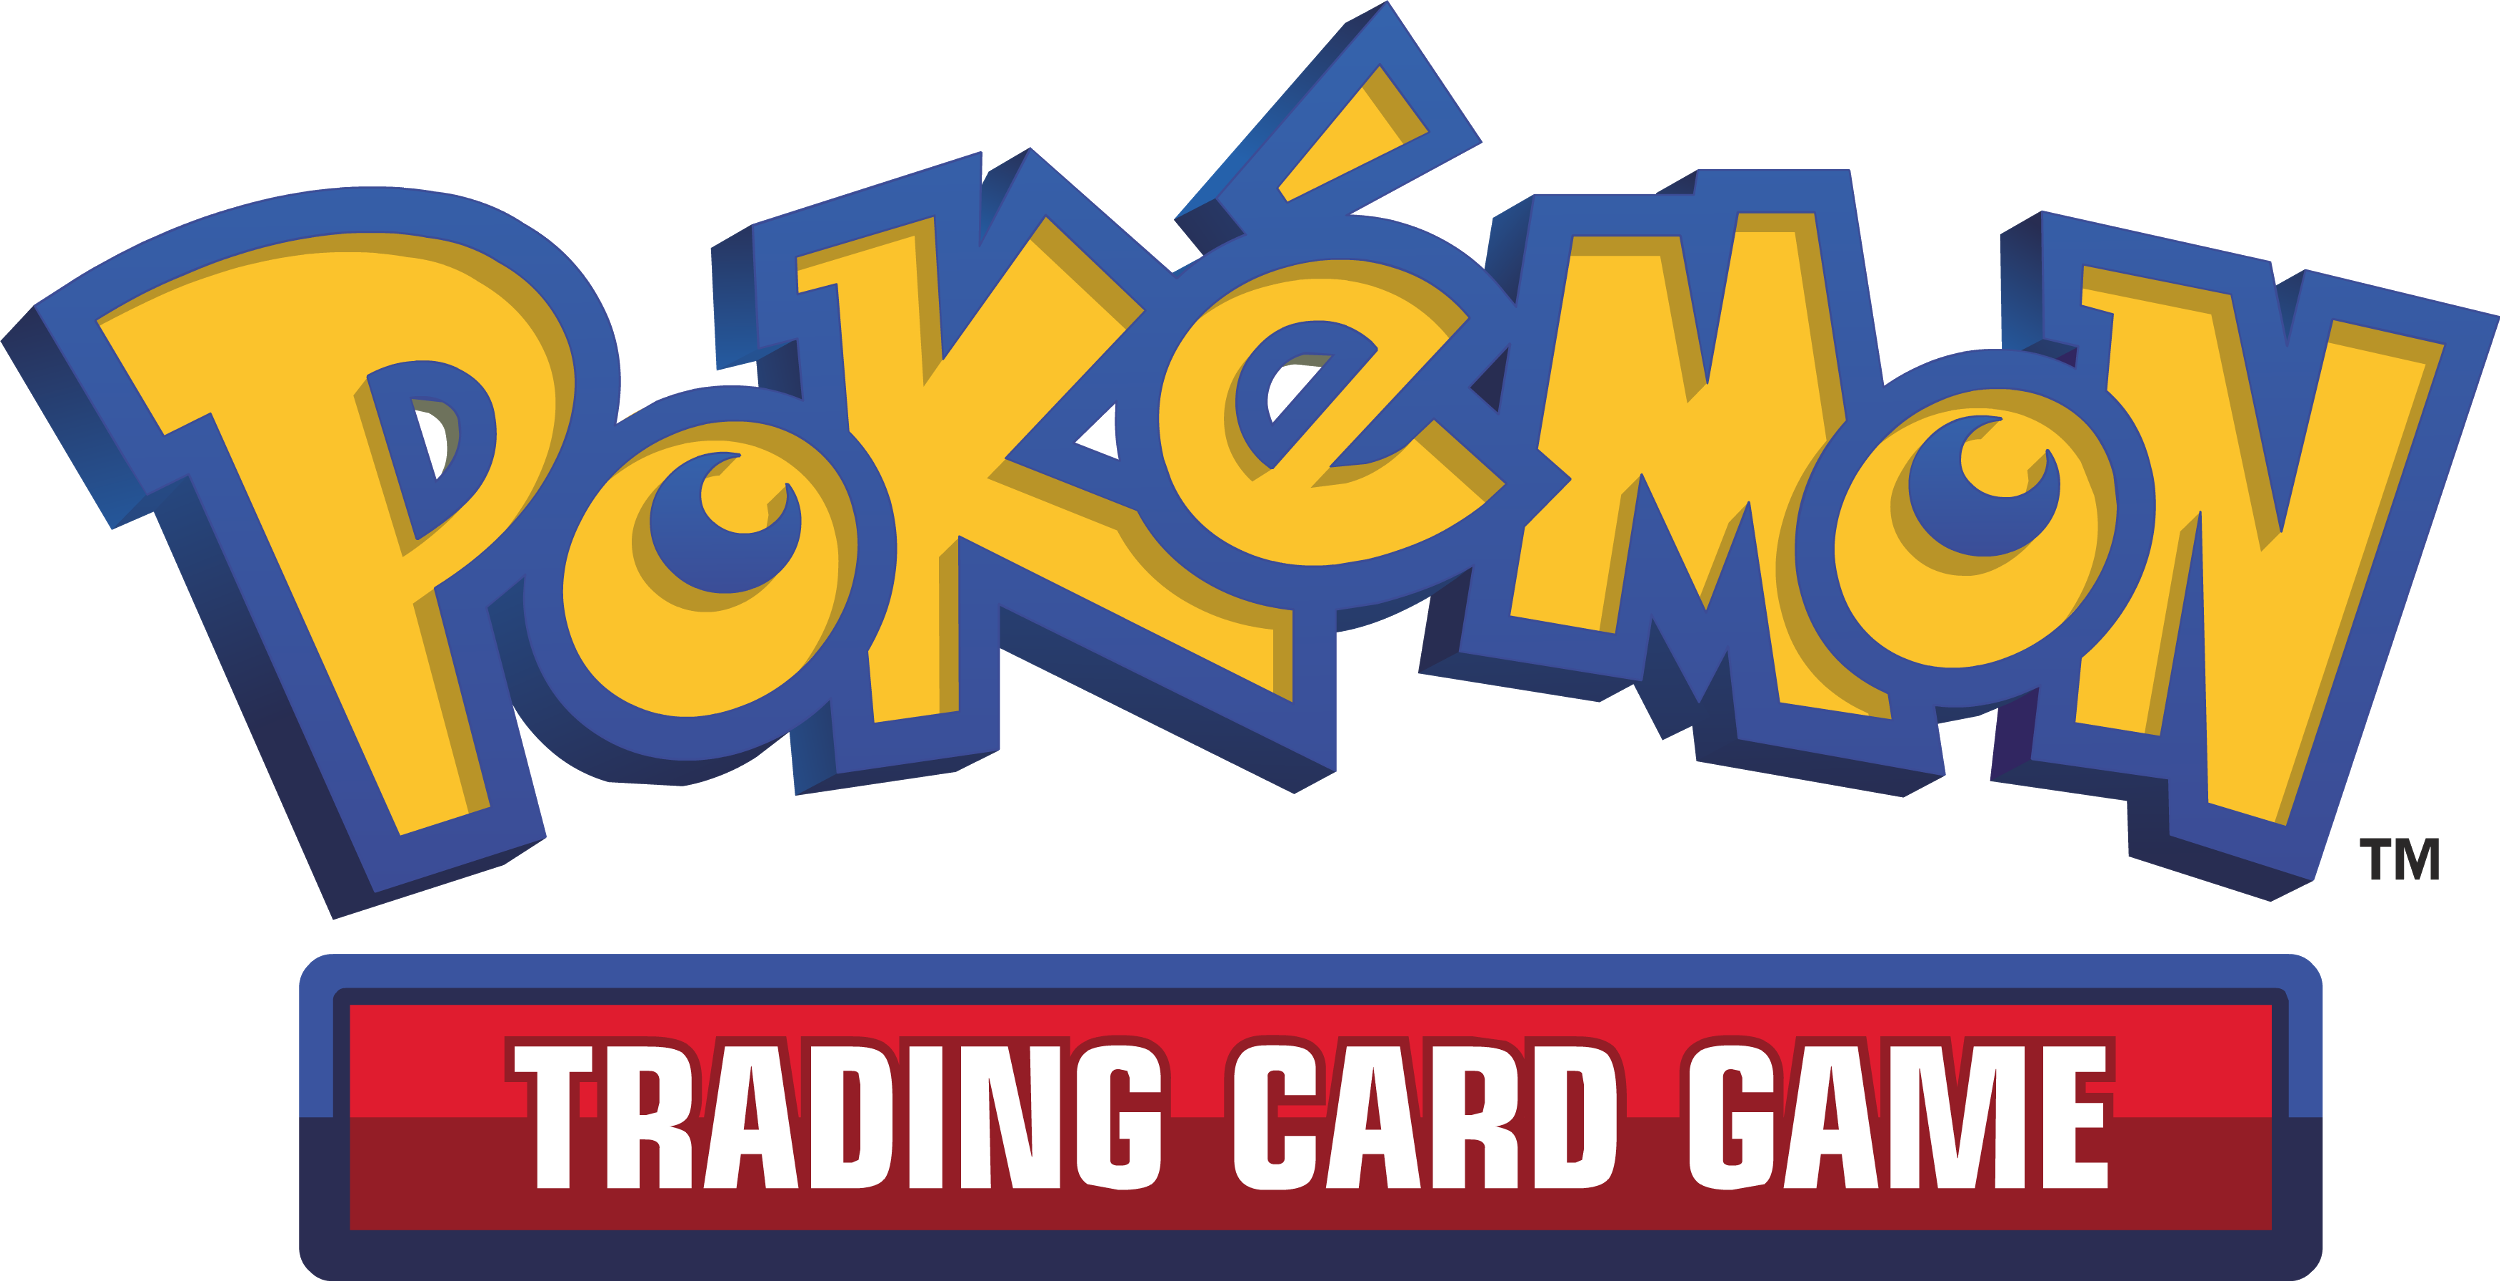 Pokemon live stream giveaway